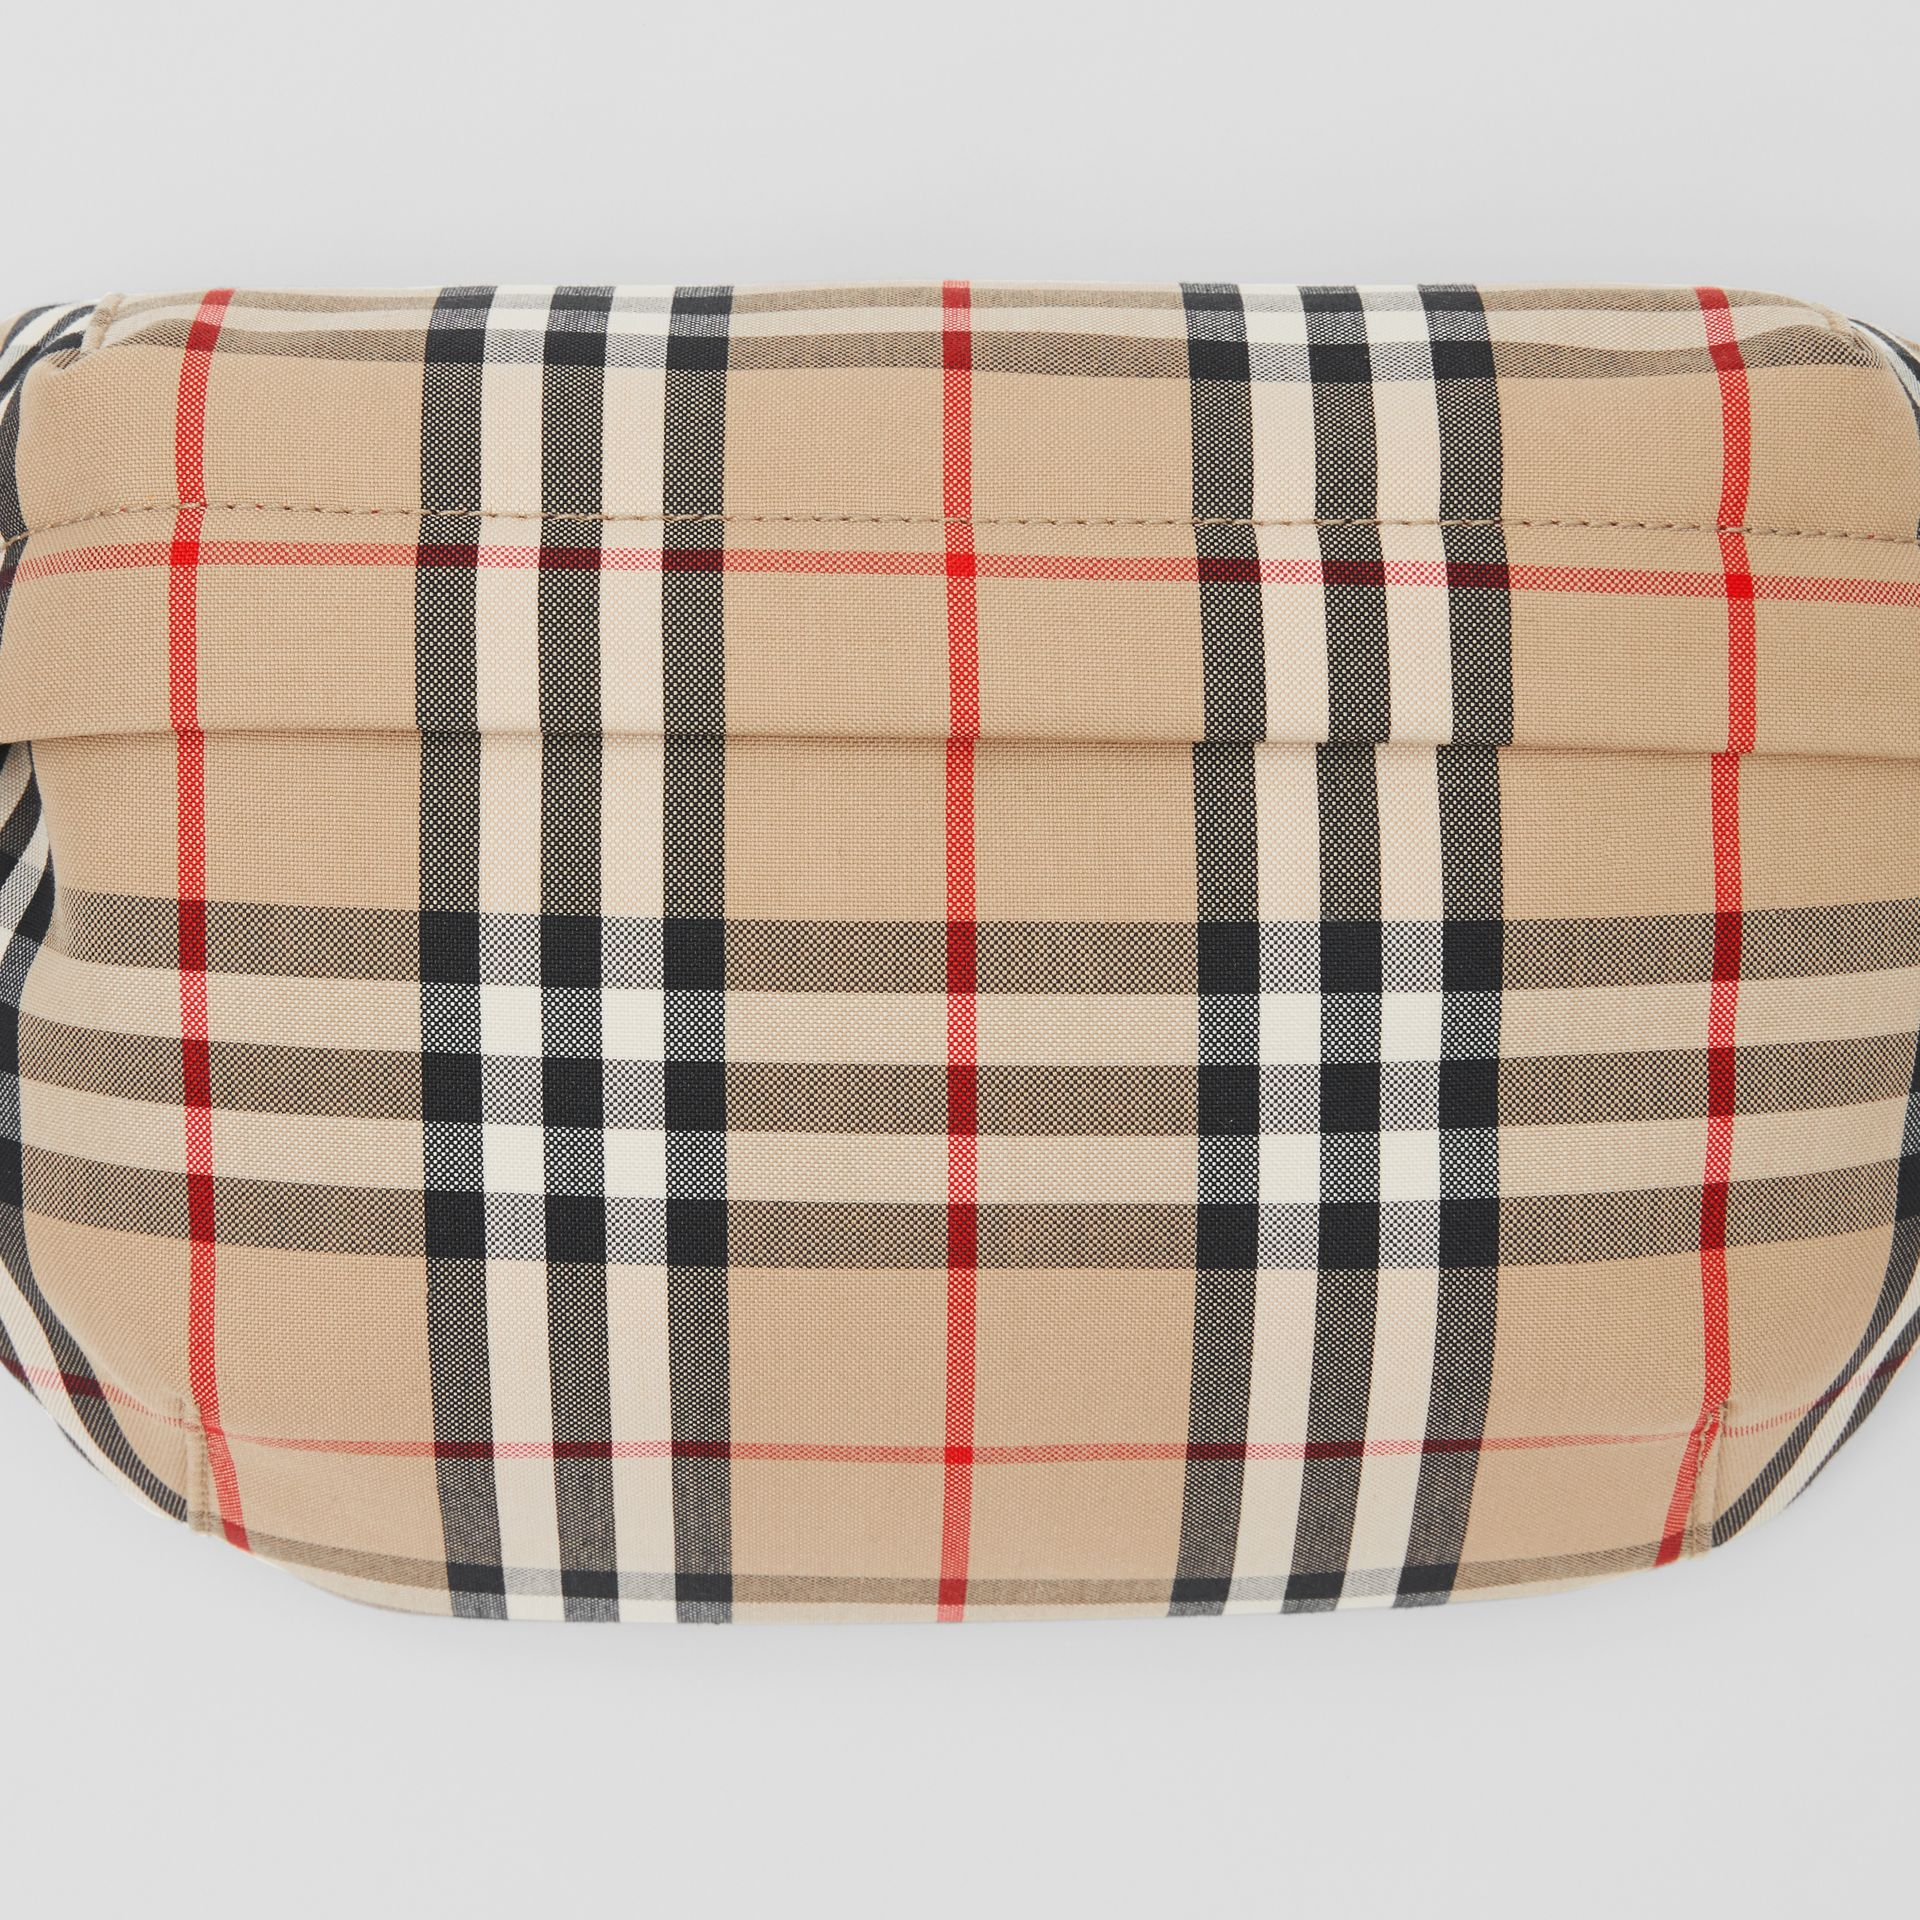 Medium Vintage Check Bonded Cotton Bum Bag in Archive Beige - Men | Burberry - gallery image 1